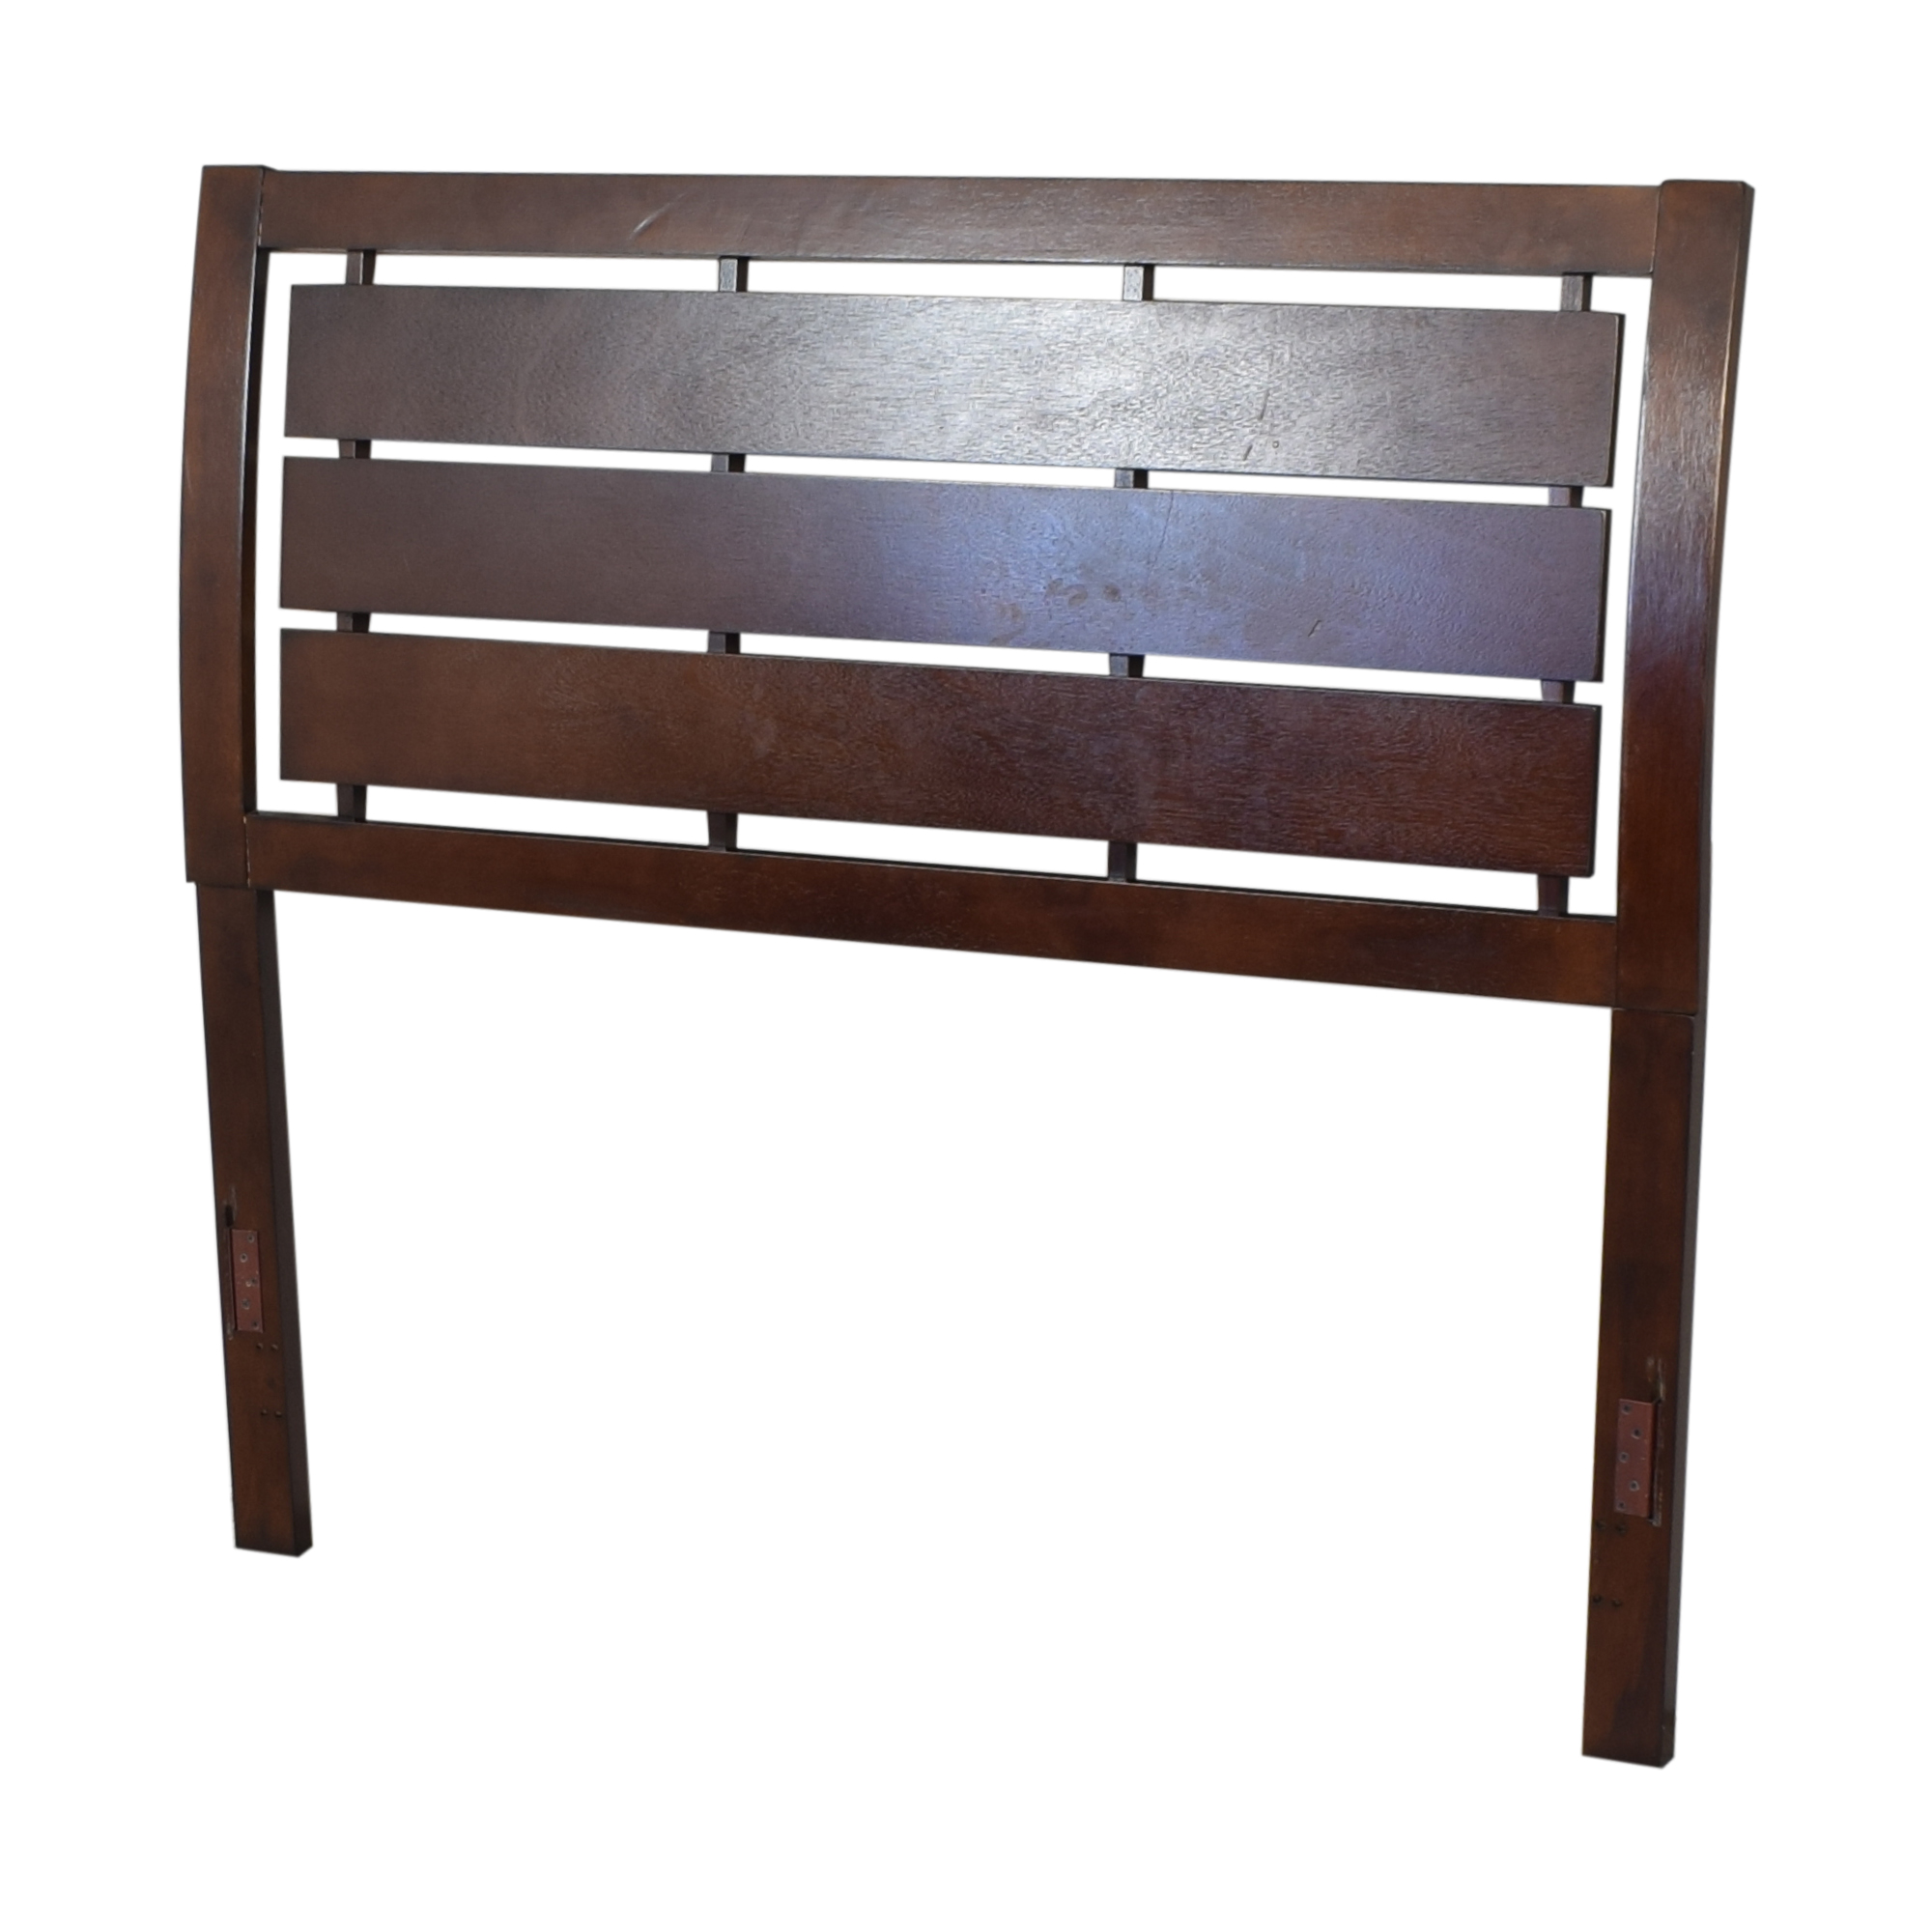 buy Wayfair Full Slat Headboard Wayfair Headboards